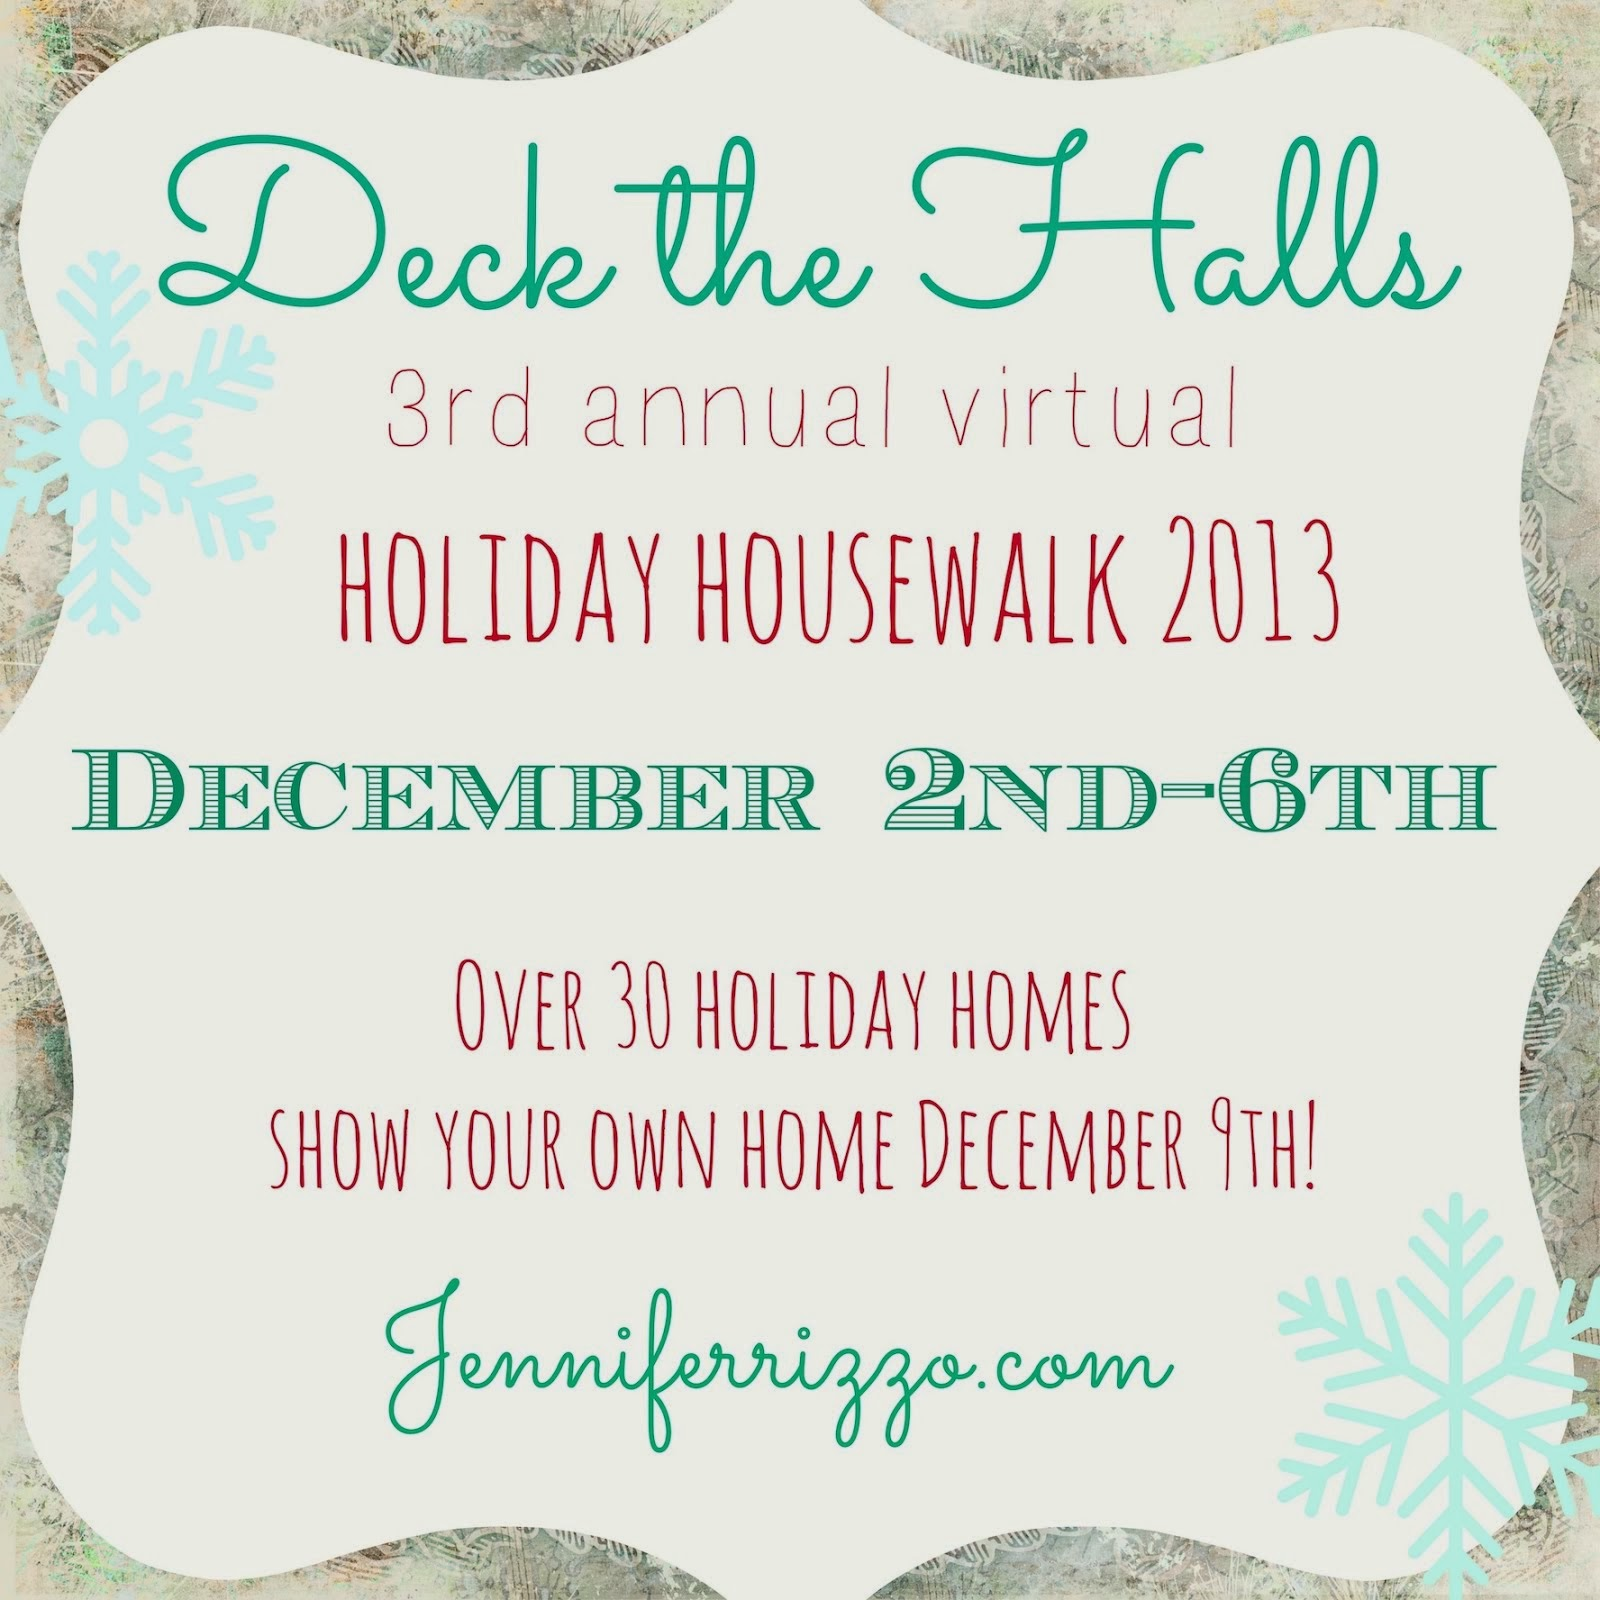 Holiday Housewalk 2013